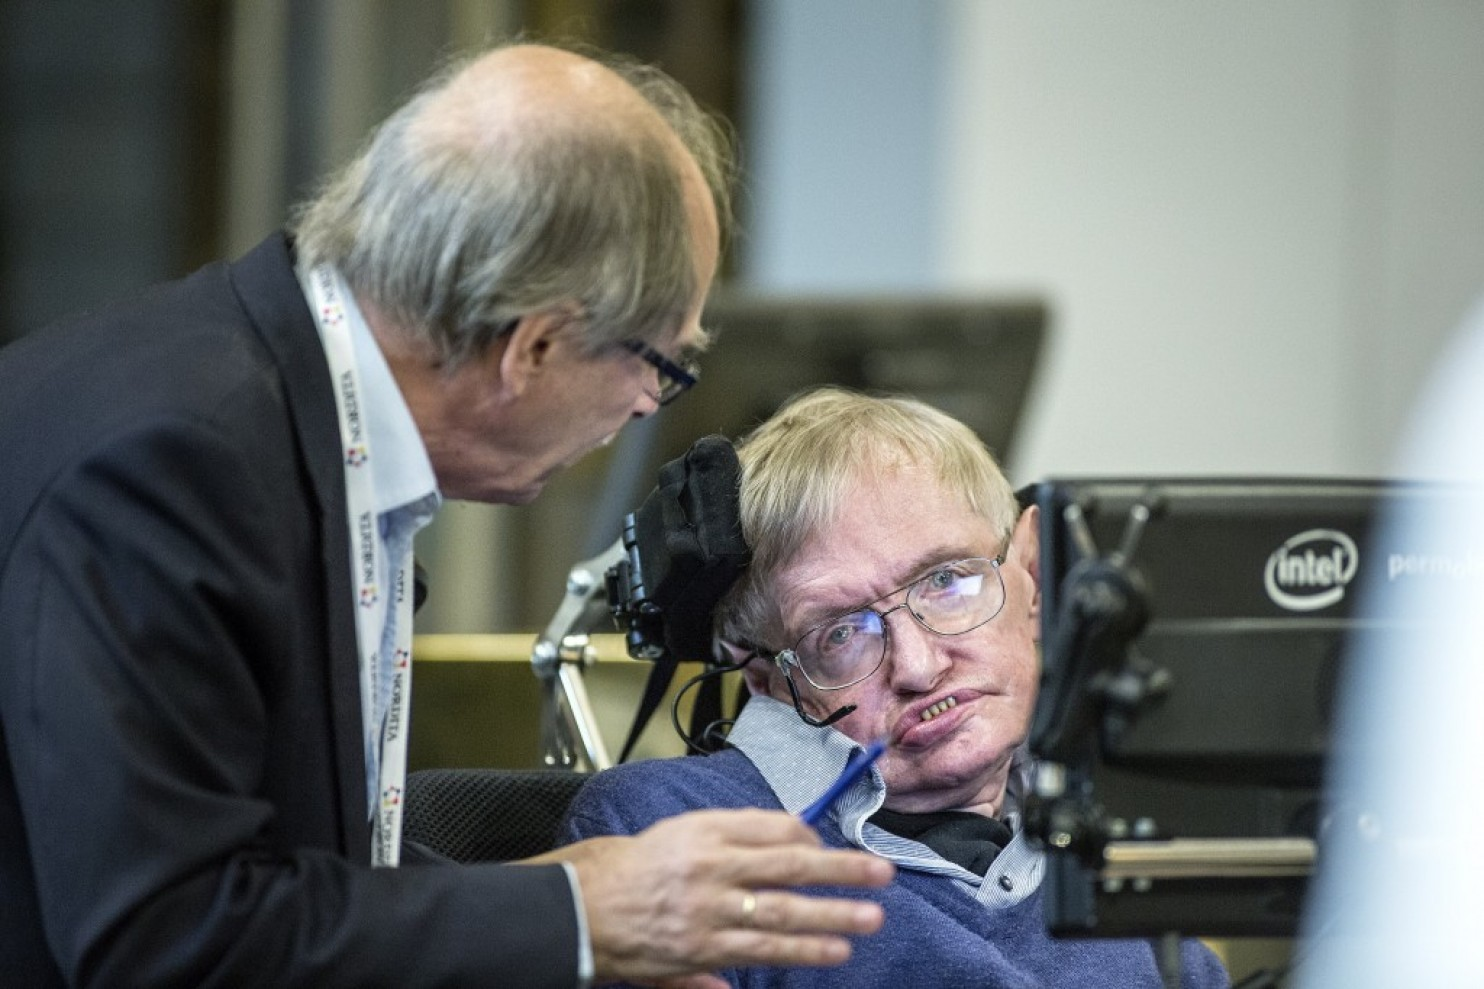 Stephen Hawking gives a lecture on black holes at KTH in Stockholm, Sweden.